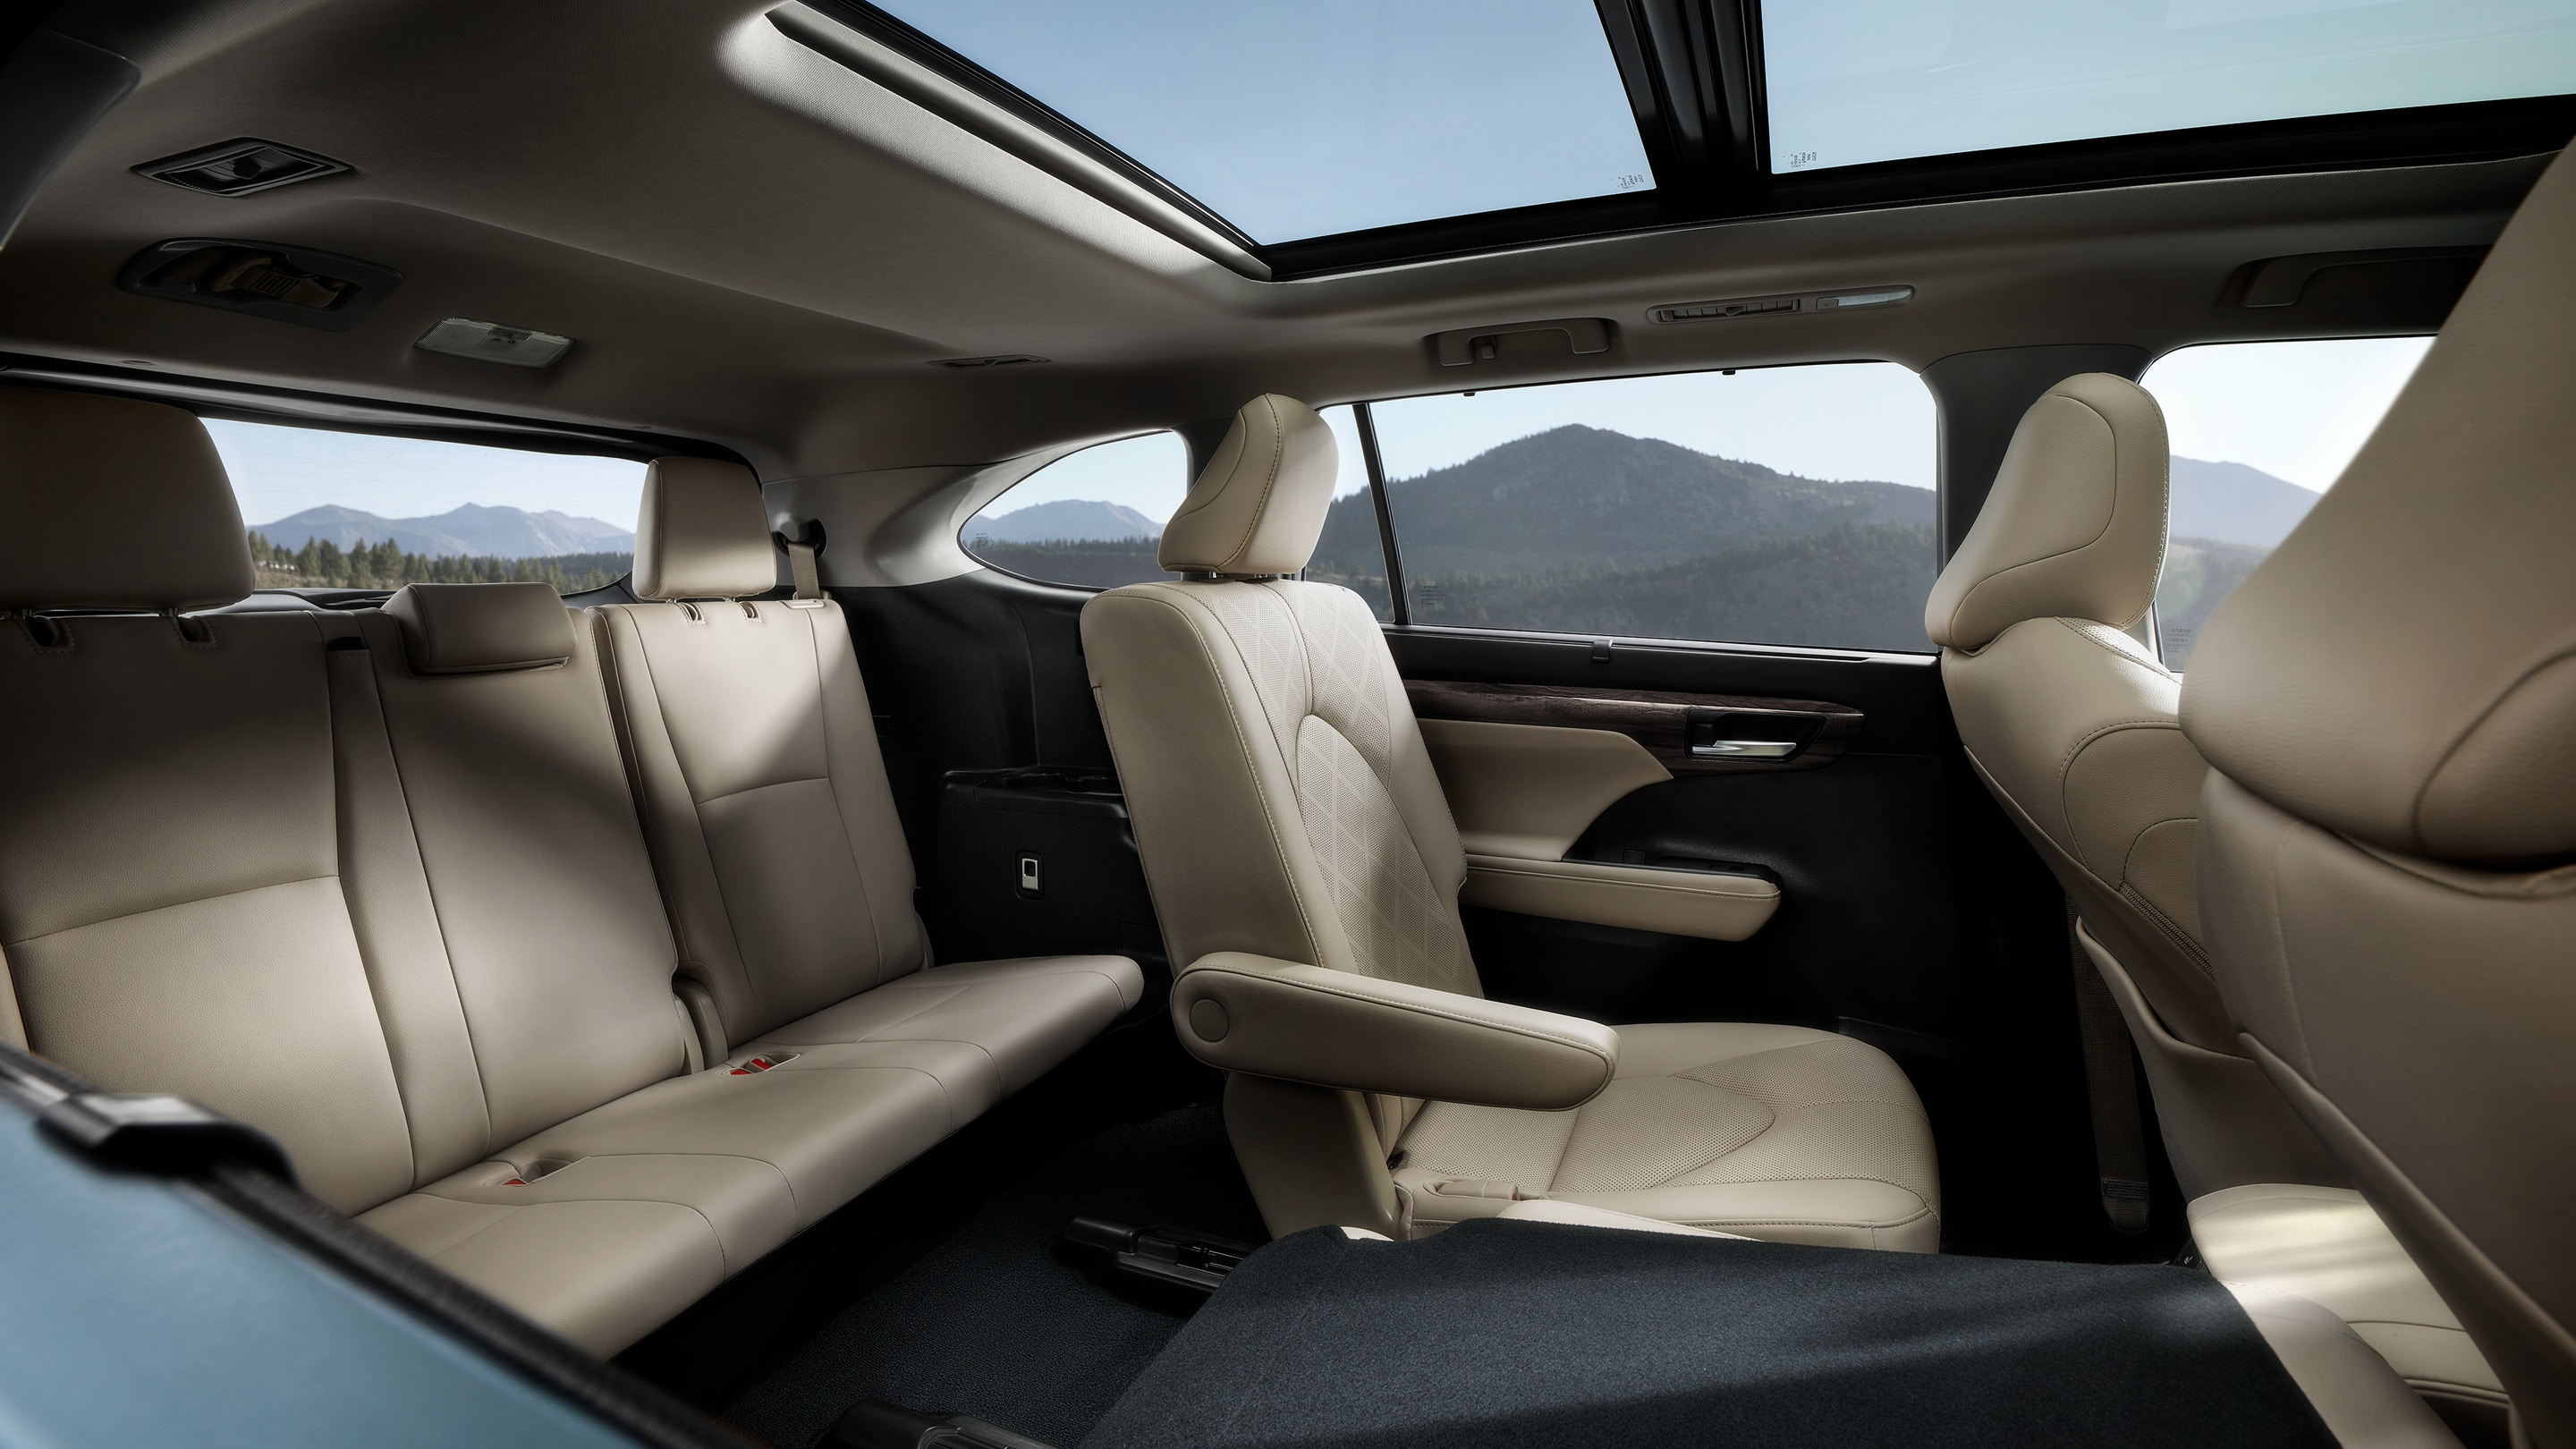 Seating in the 2020 Highlander